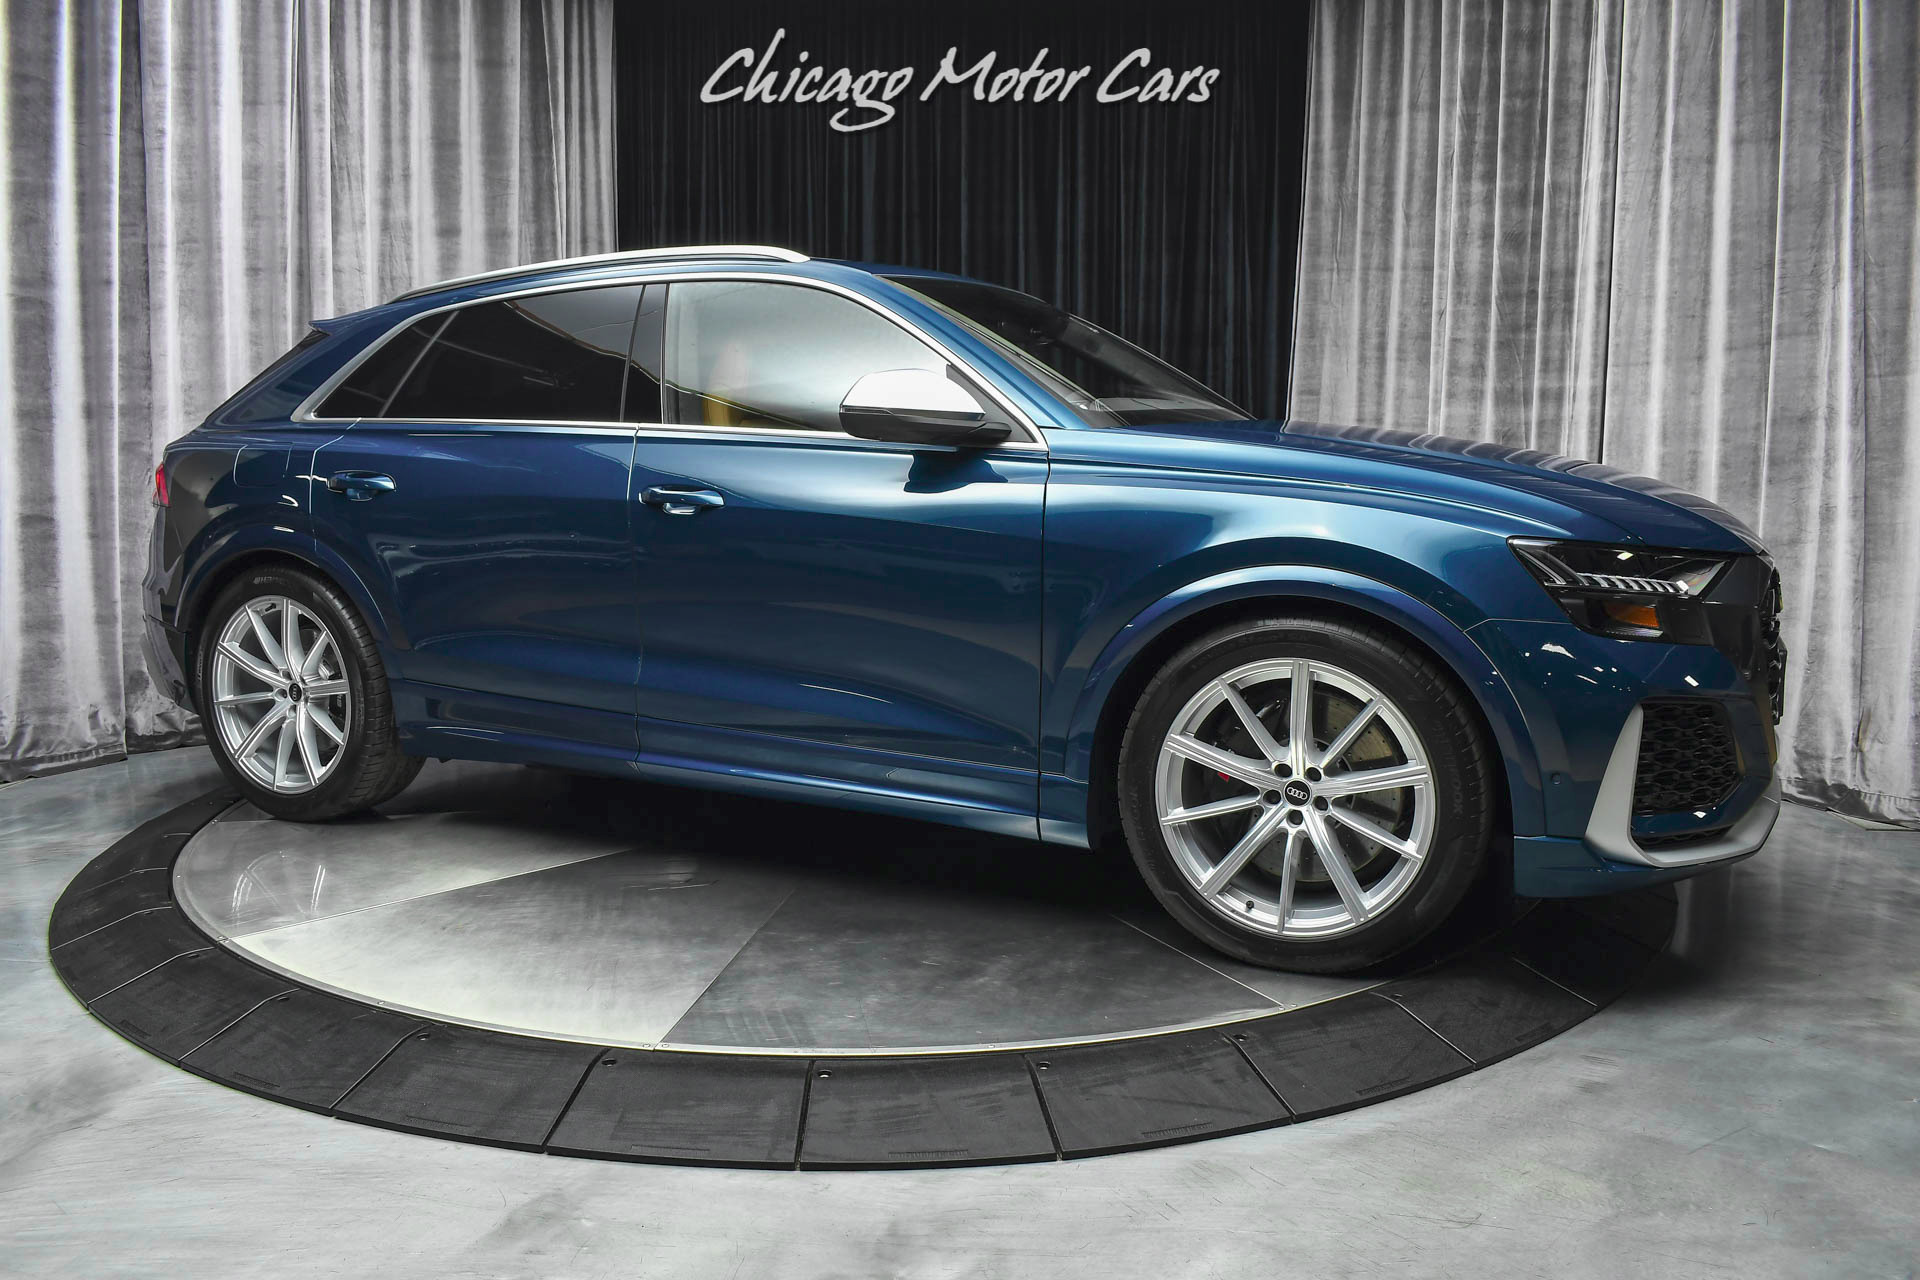 Used-2021-Audi-RS-Q8-40T-quattro-SUV-ONLY-150-MILES-BANG---OLUFSEN-SOUND-SYSTEM